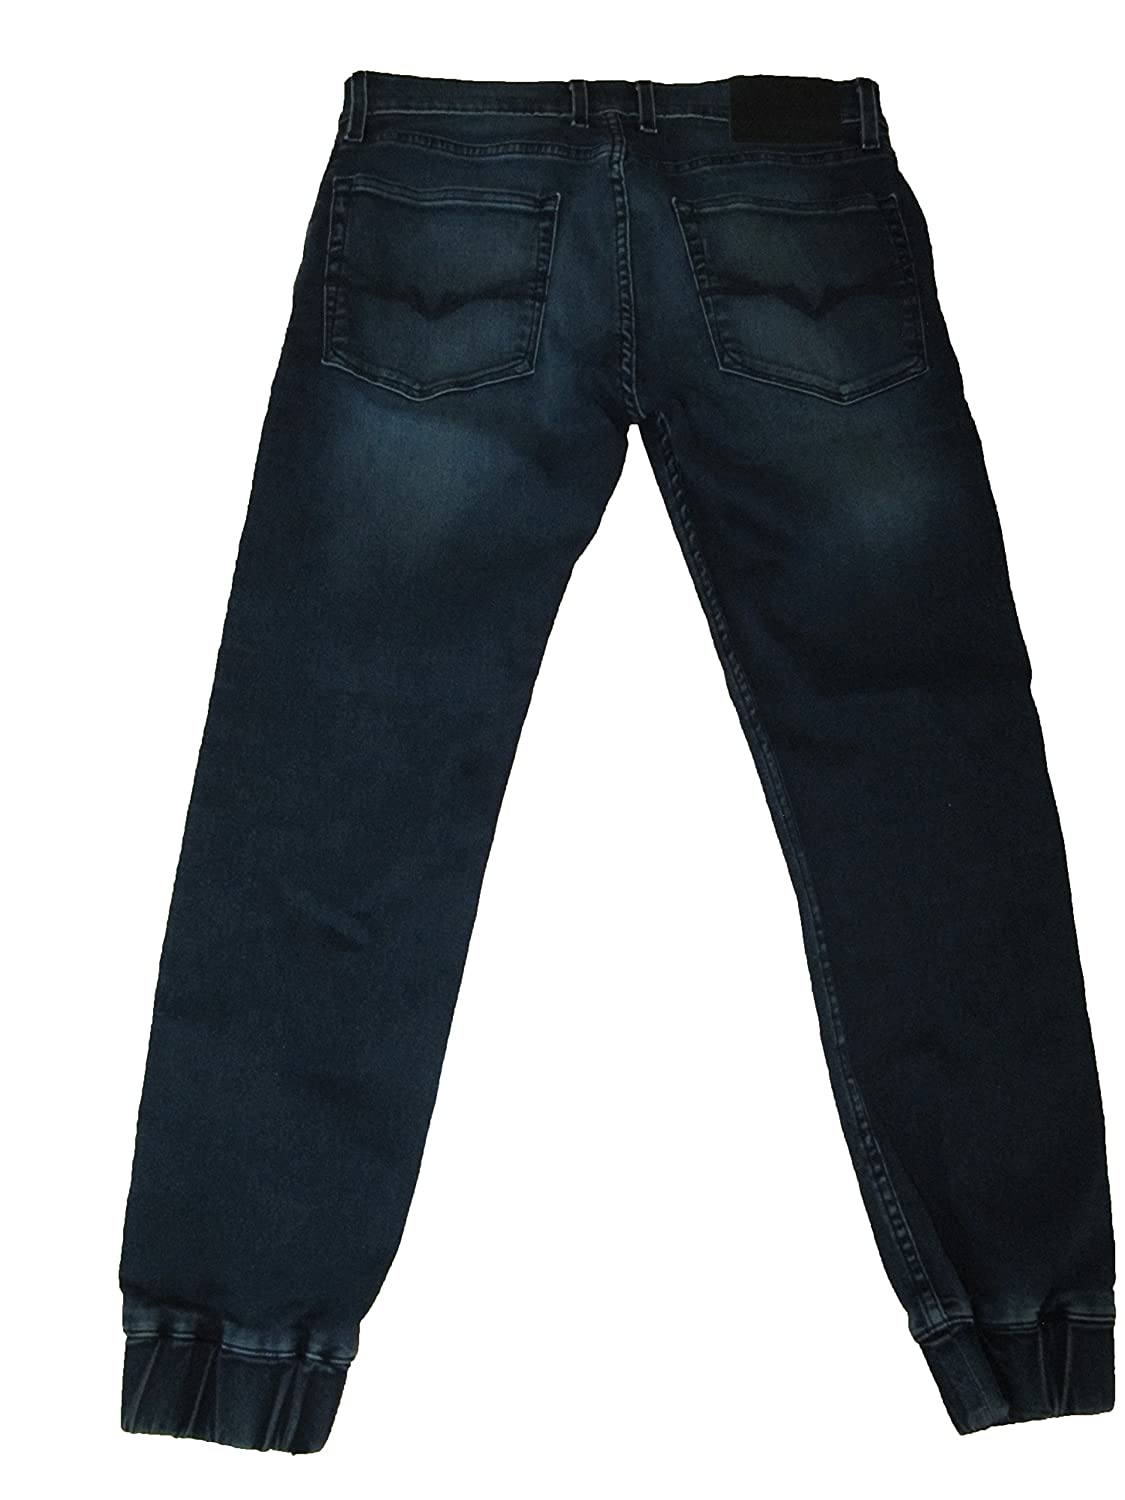 Guess Alameda Jogger Jeans Mens Size 32 x 32 Crusher Wash